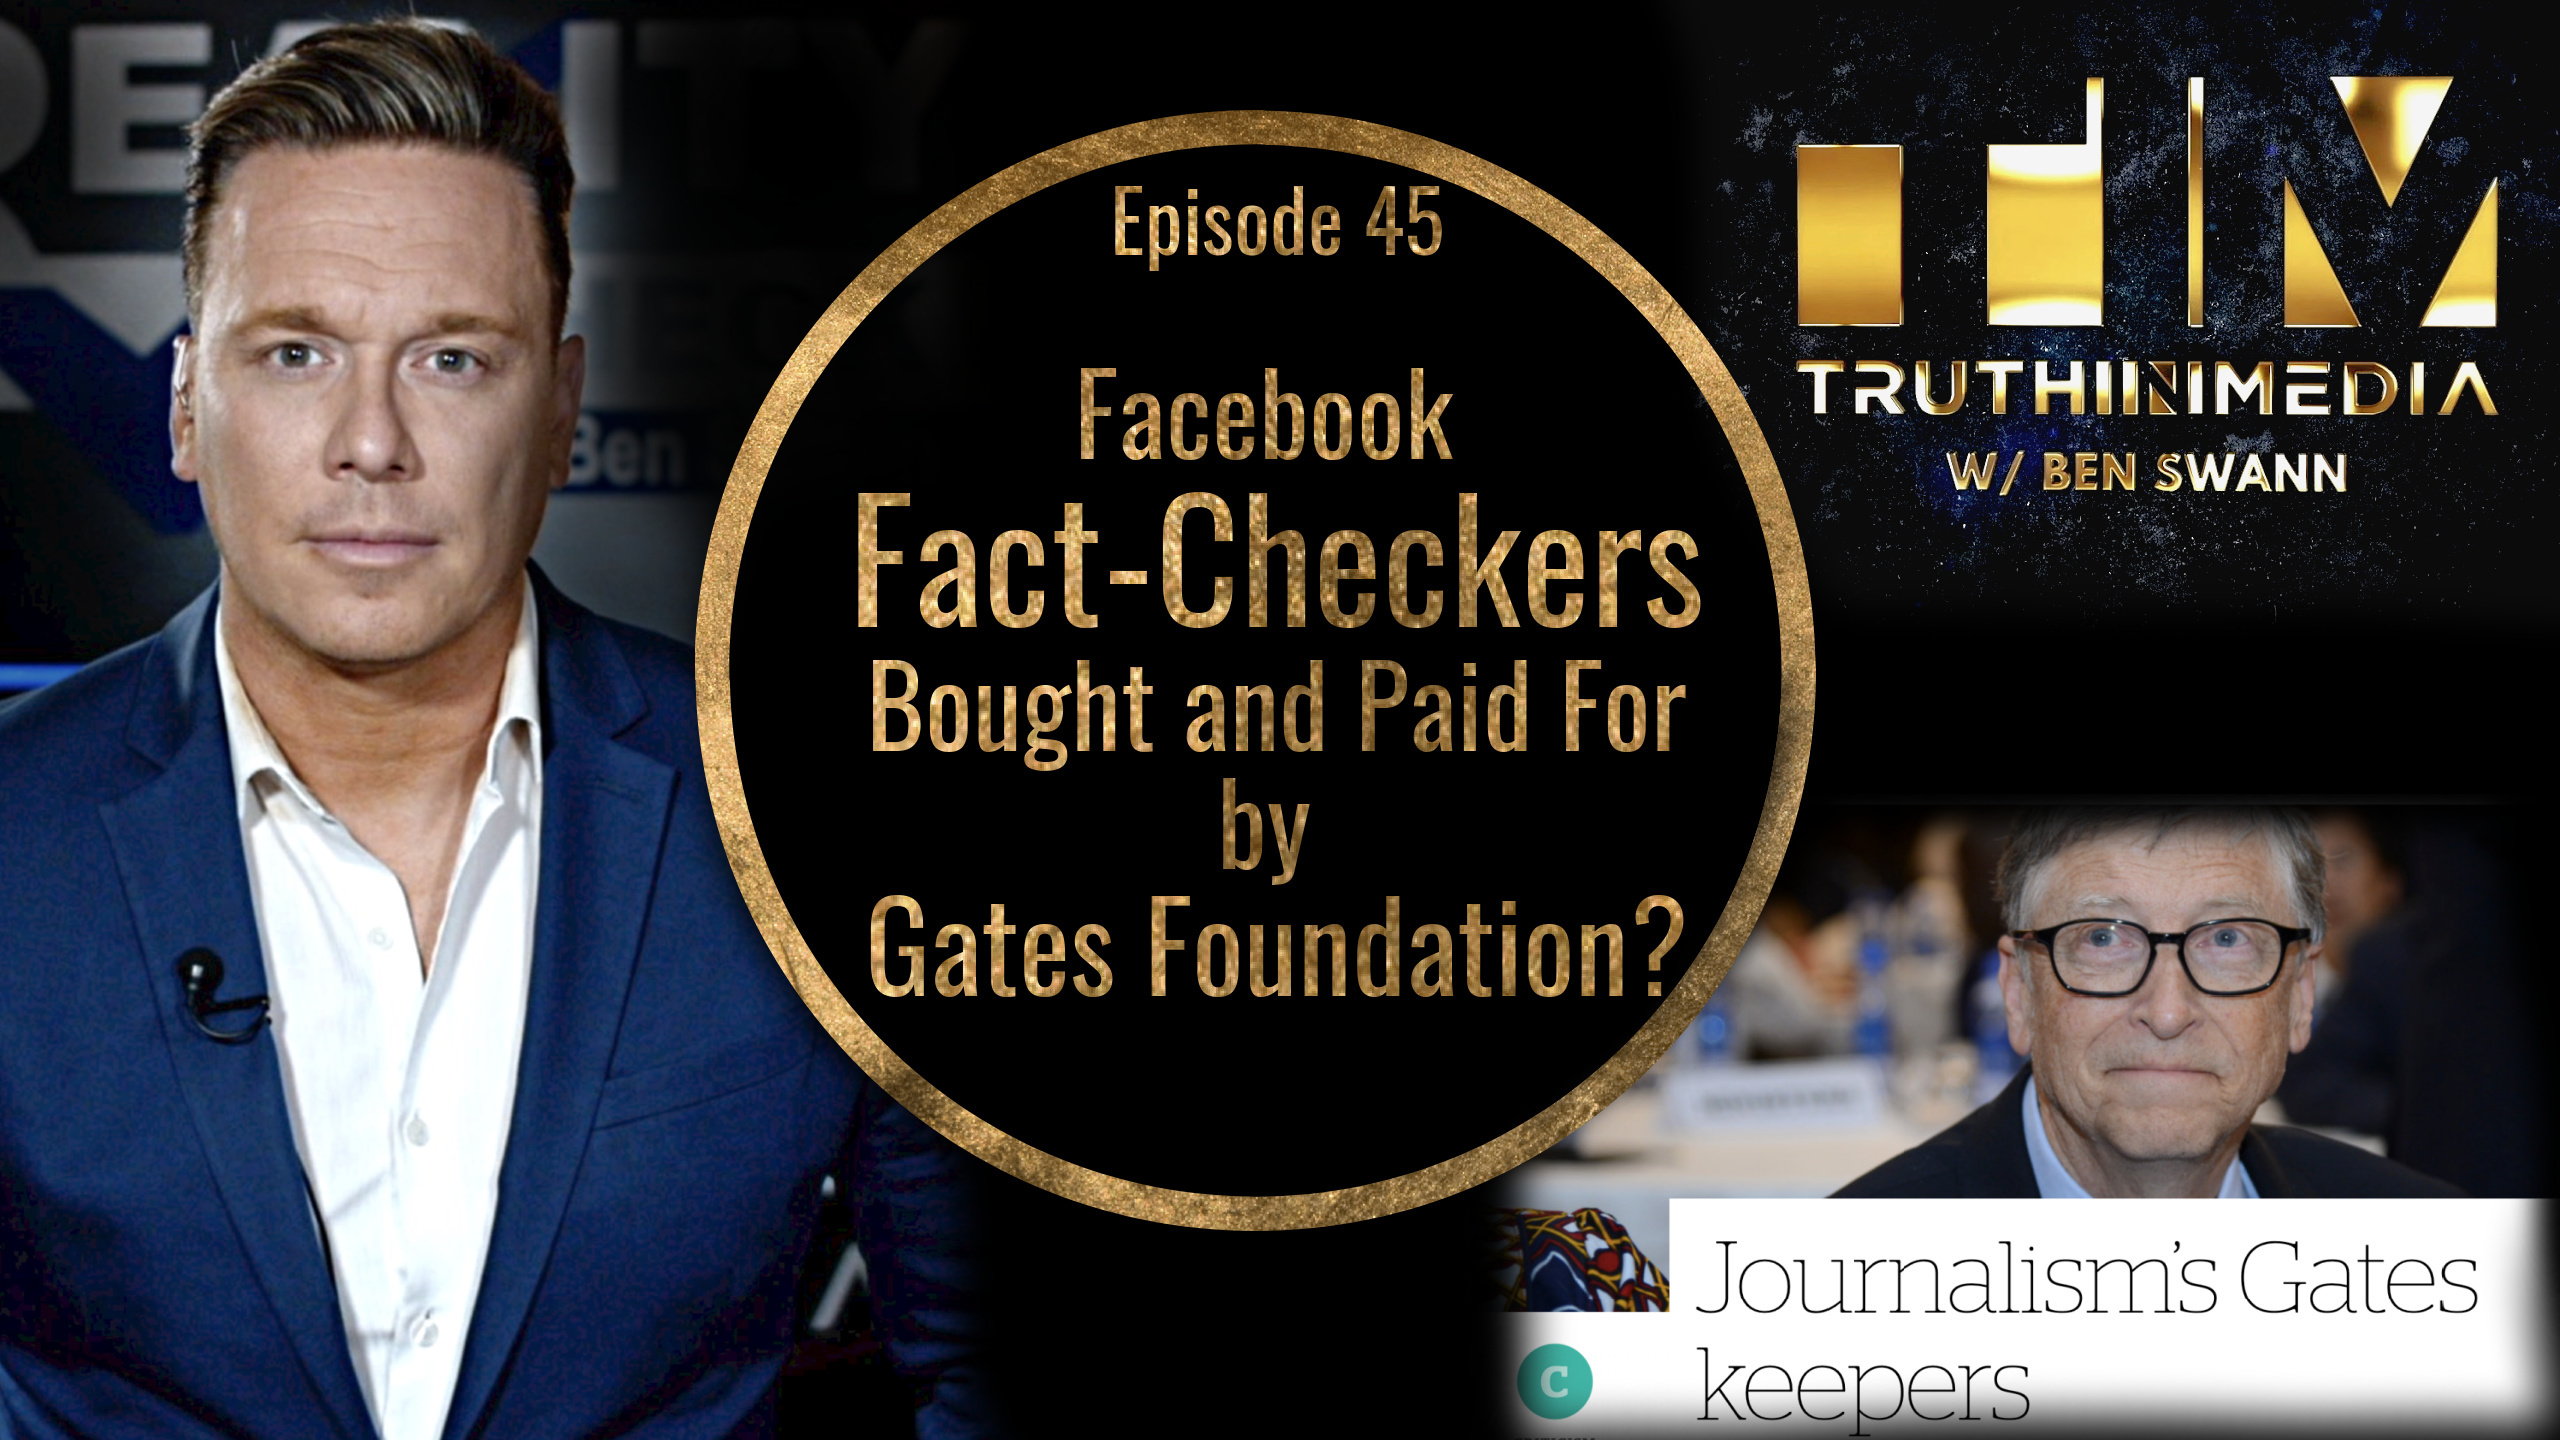 Facebook FactCheckers Bought and Paid for By Gates Foundation?